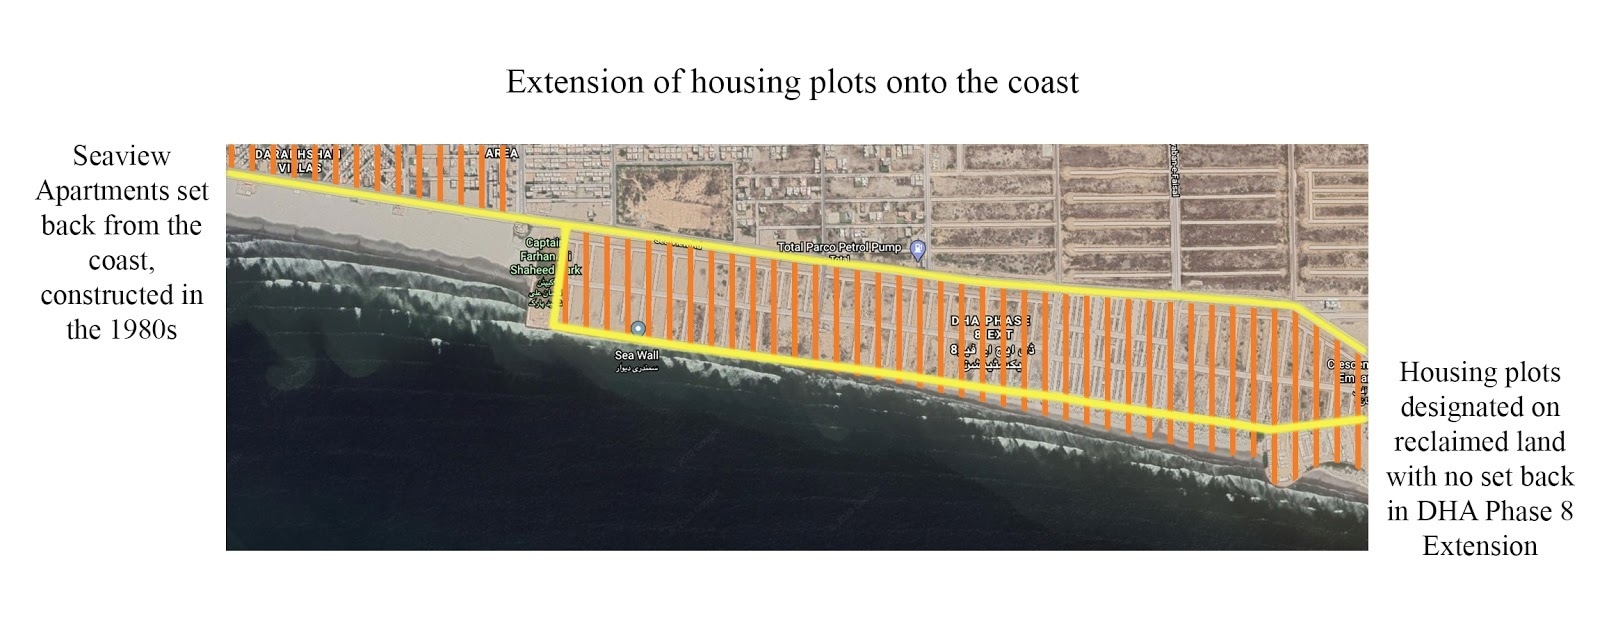 Extension of DHA housing plots on to the edge | Courtesy Marvi Mazhar and Associates